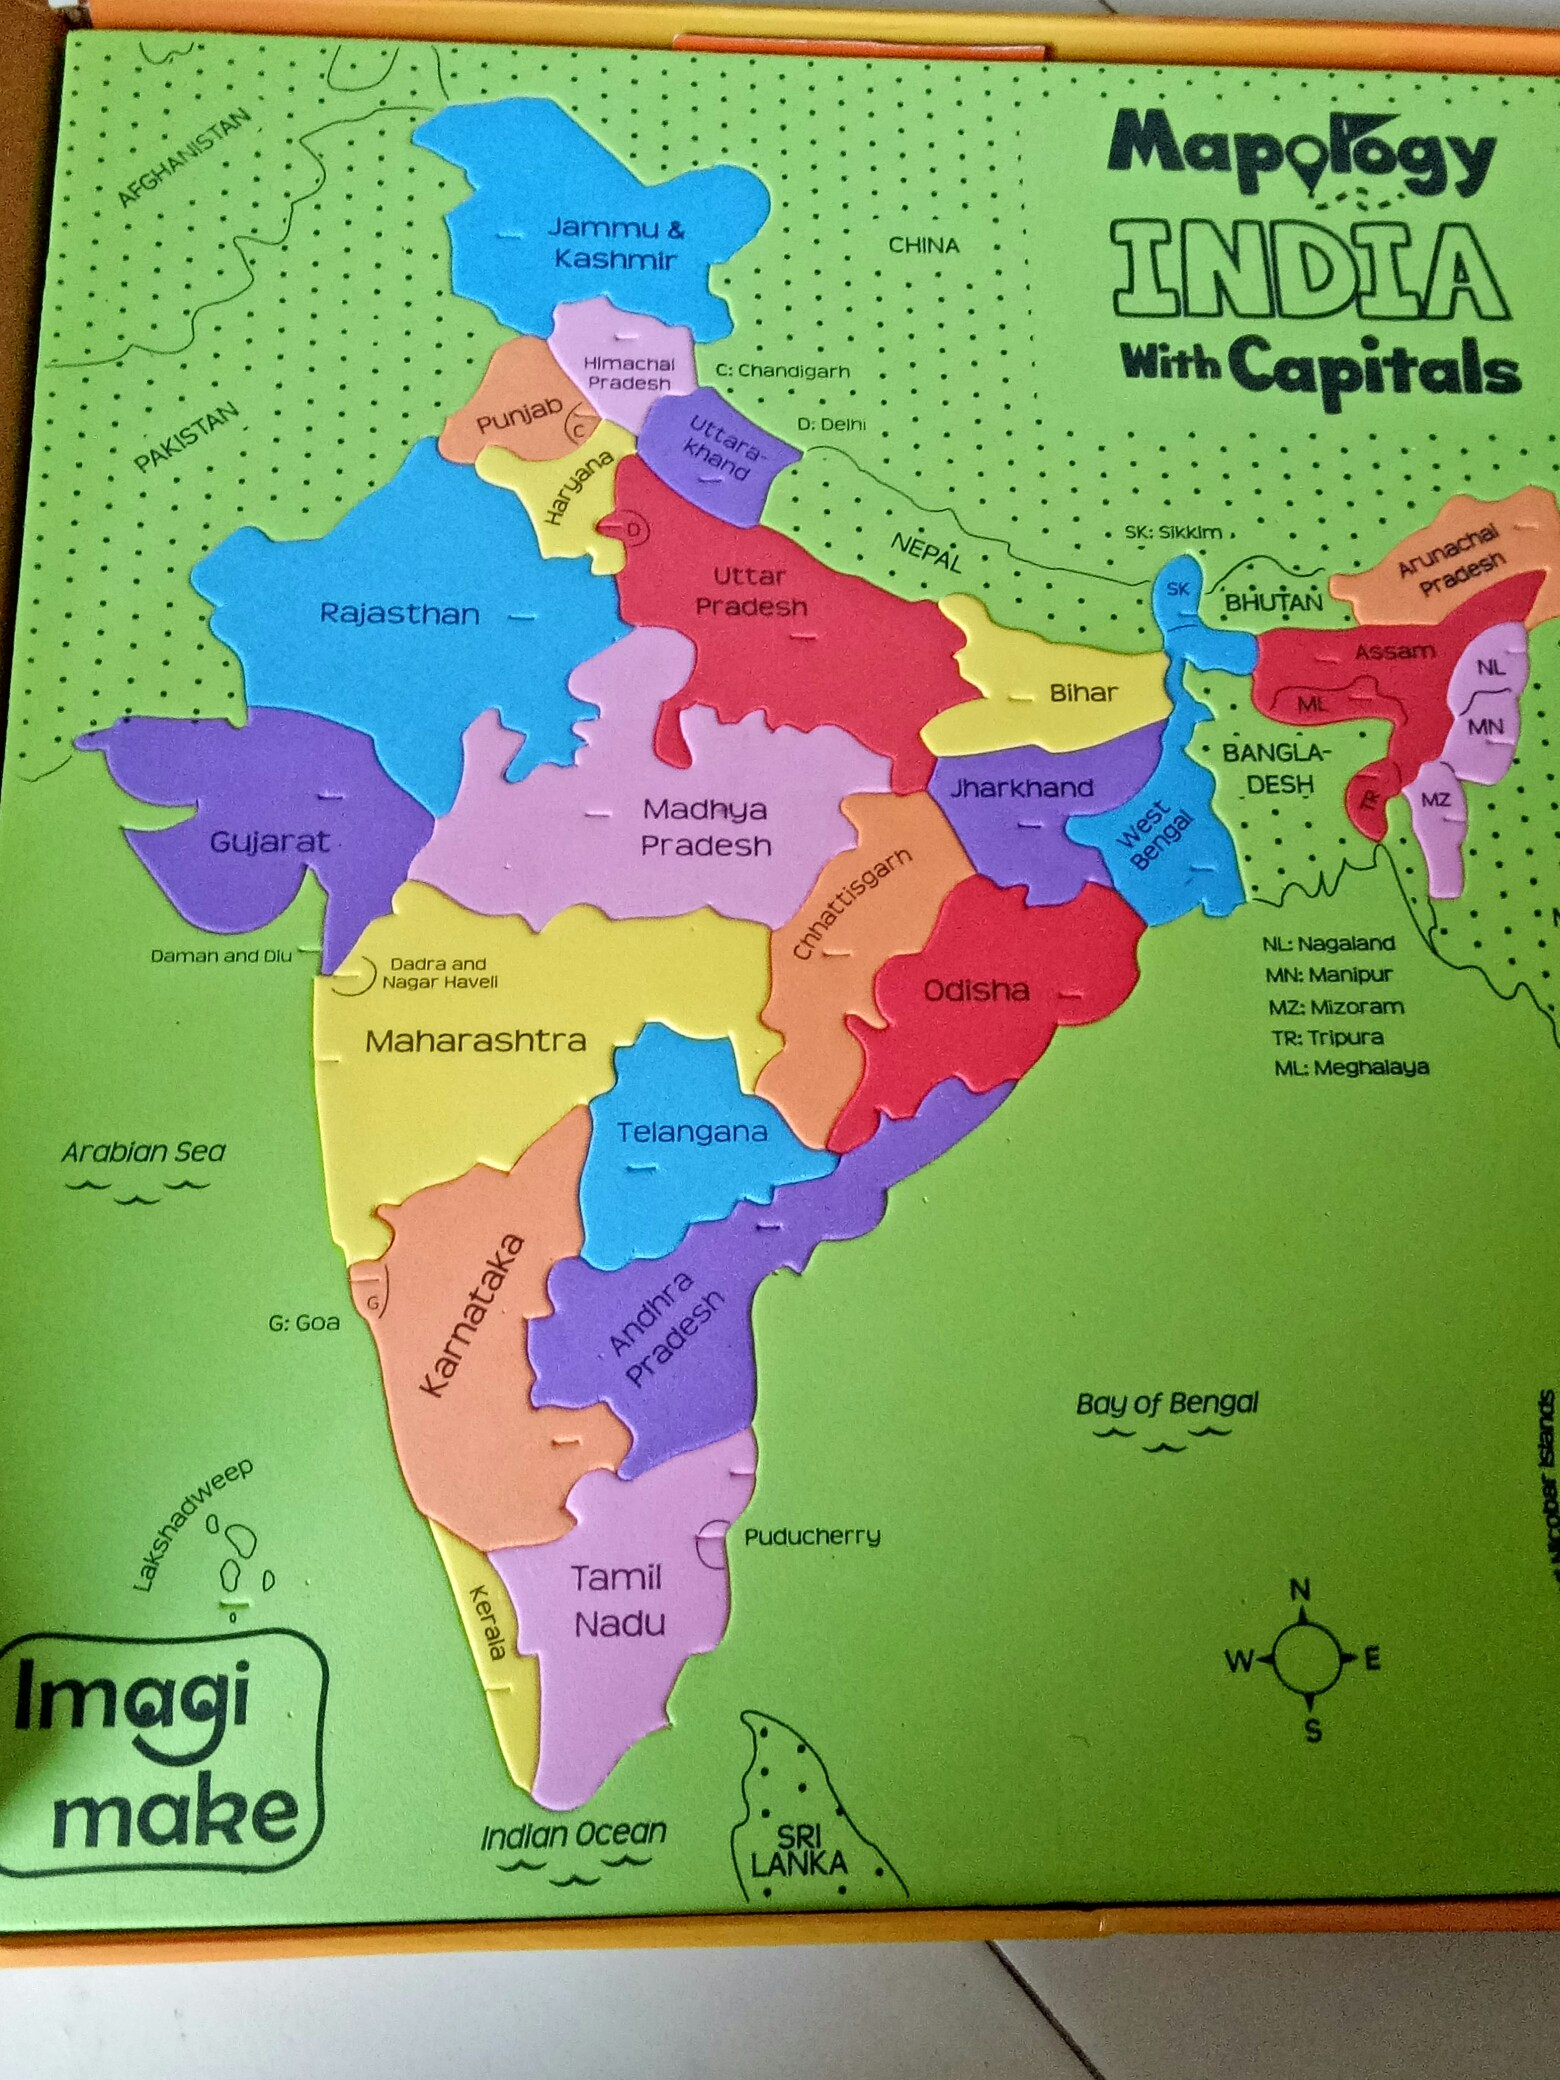 India Map Puzzle.Imagination Is The Key To Creative Minds Imagimake Does The Same